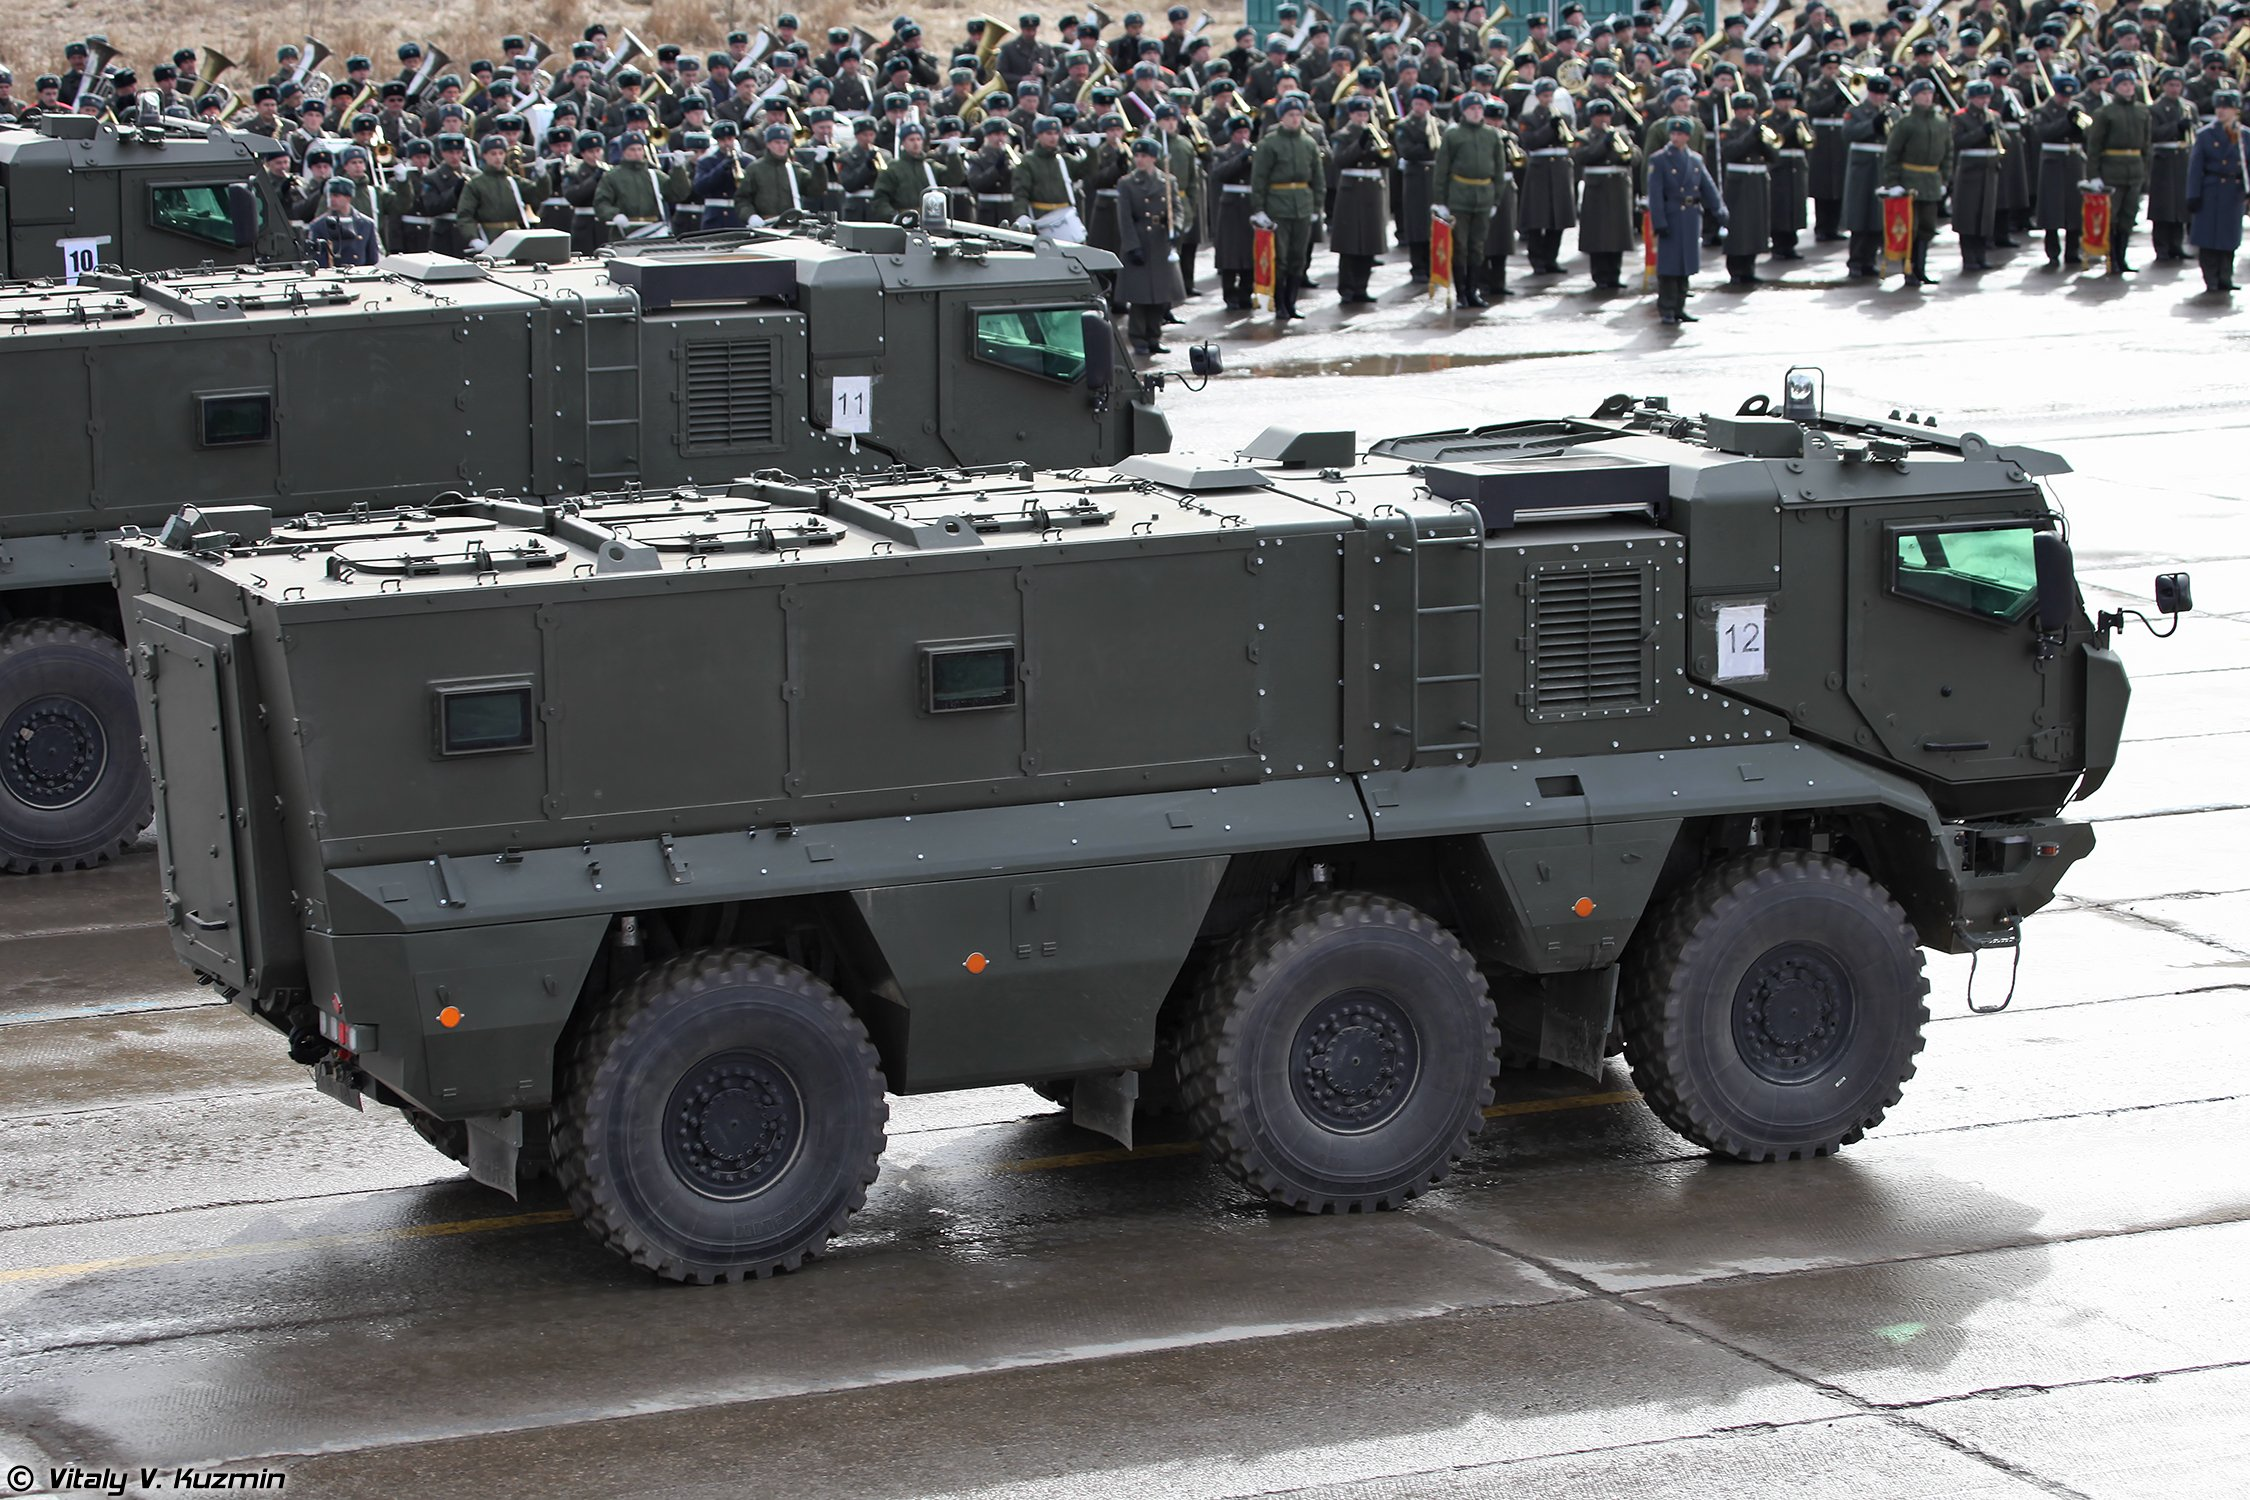 KAMAZ-63968 Typhoon-K MRAP vehicle armored truck April 9th rehearsal in Alabino of 2014 Victory Day Parade Russia military army russian